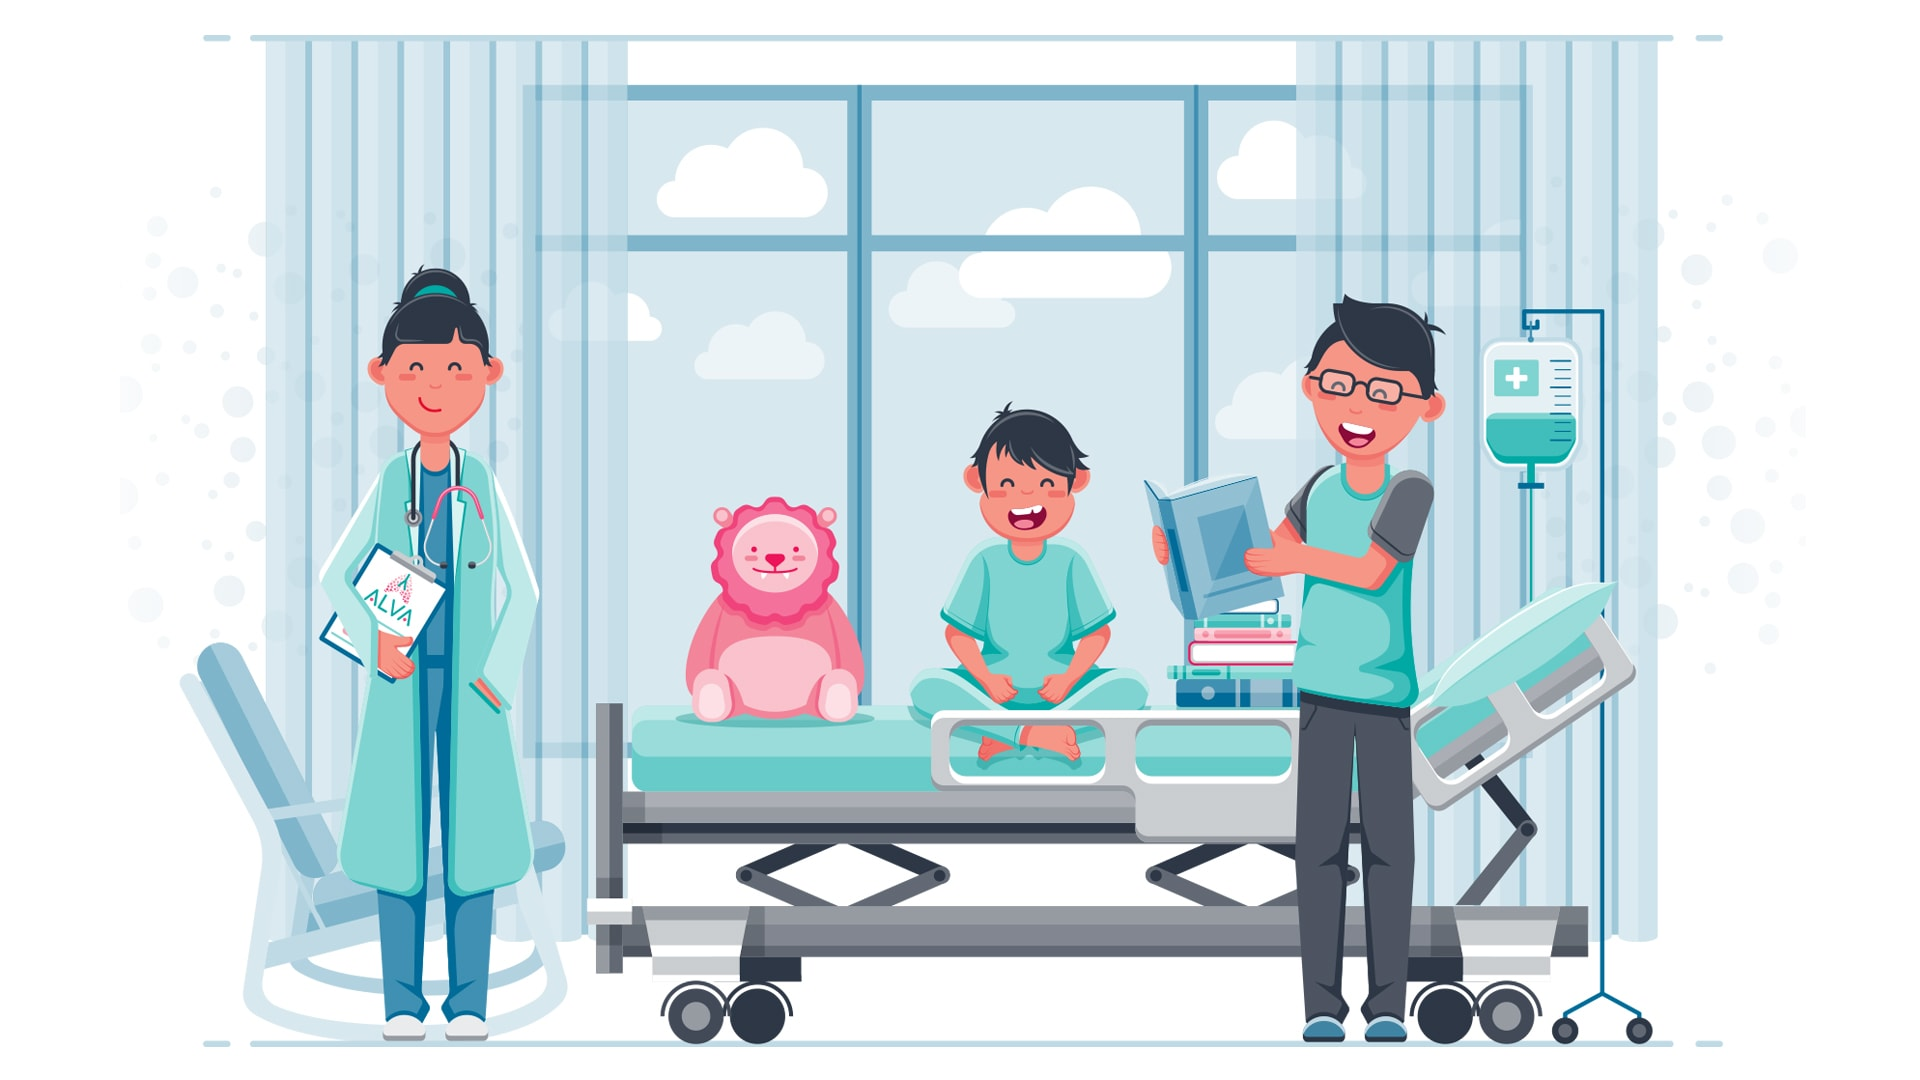 Child in Hospital Illustration